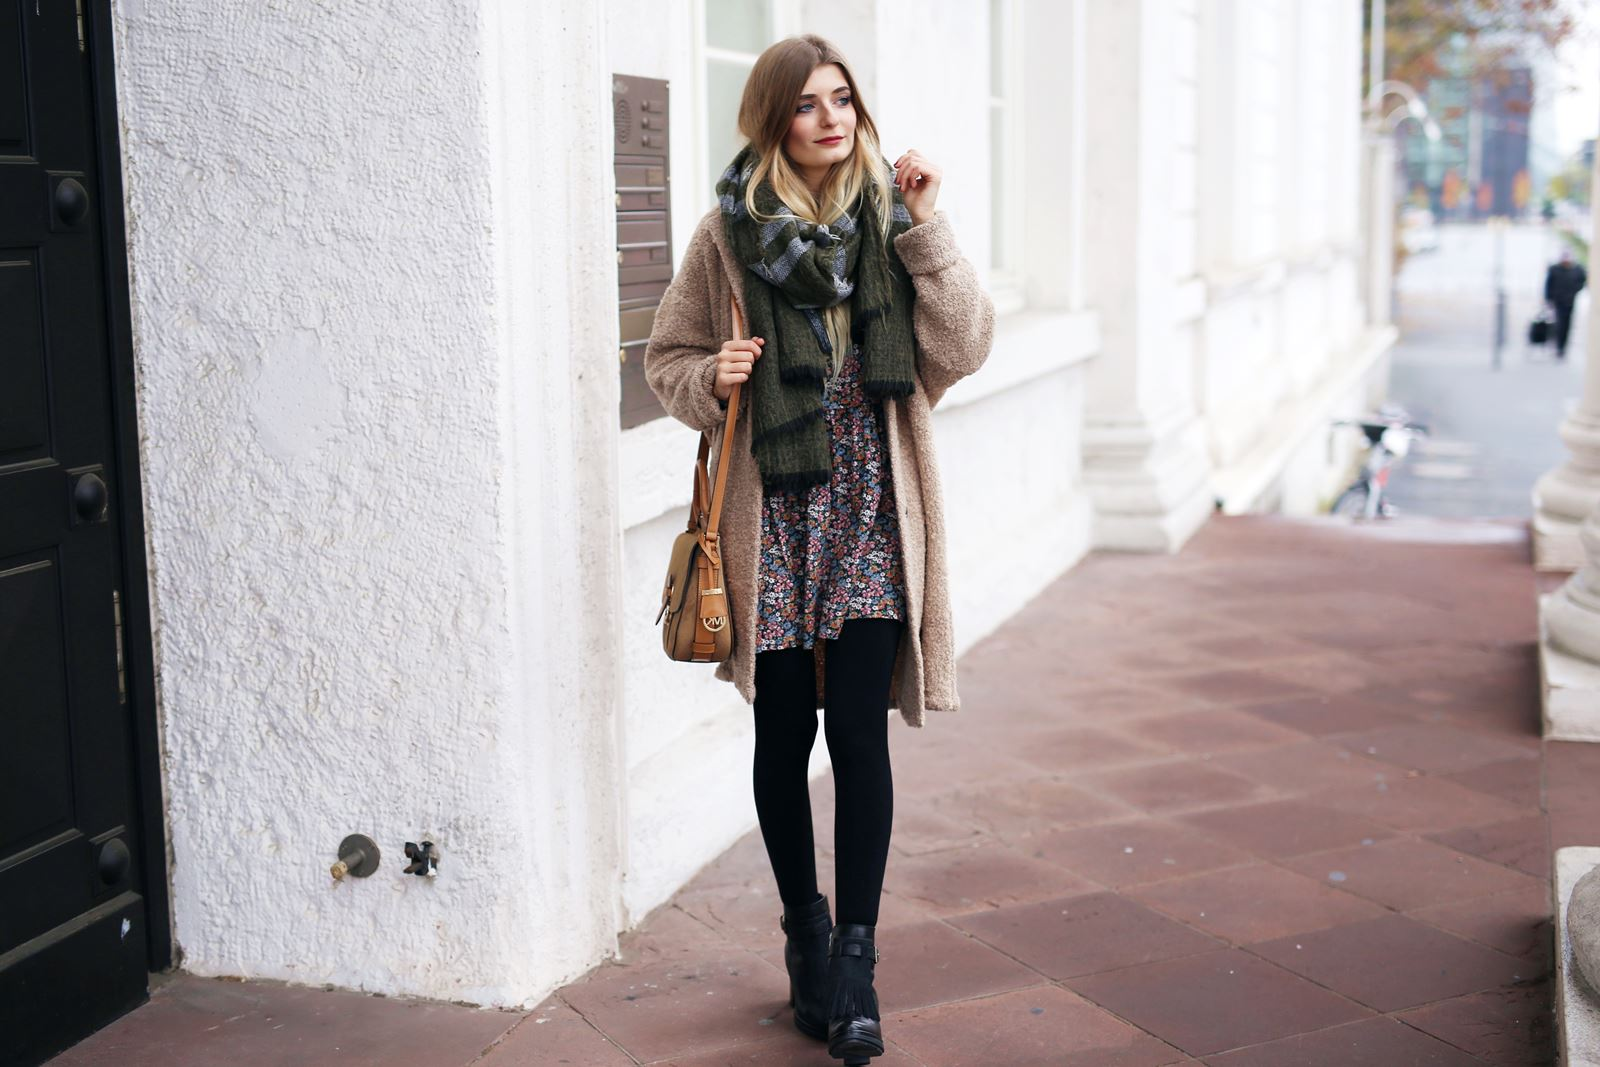 modeblog-fashion-blog-outfit-herbst-mantel-michael-kors-tasche-5